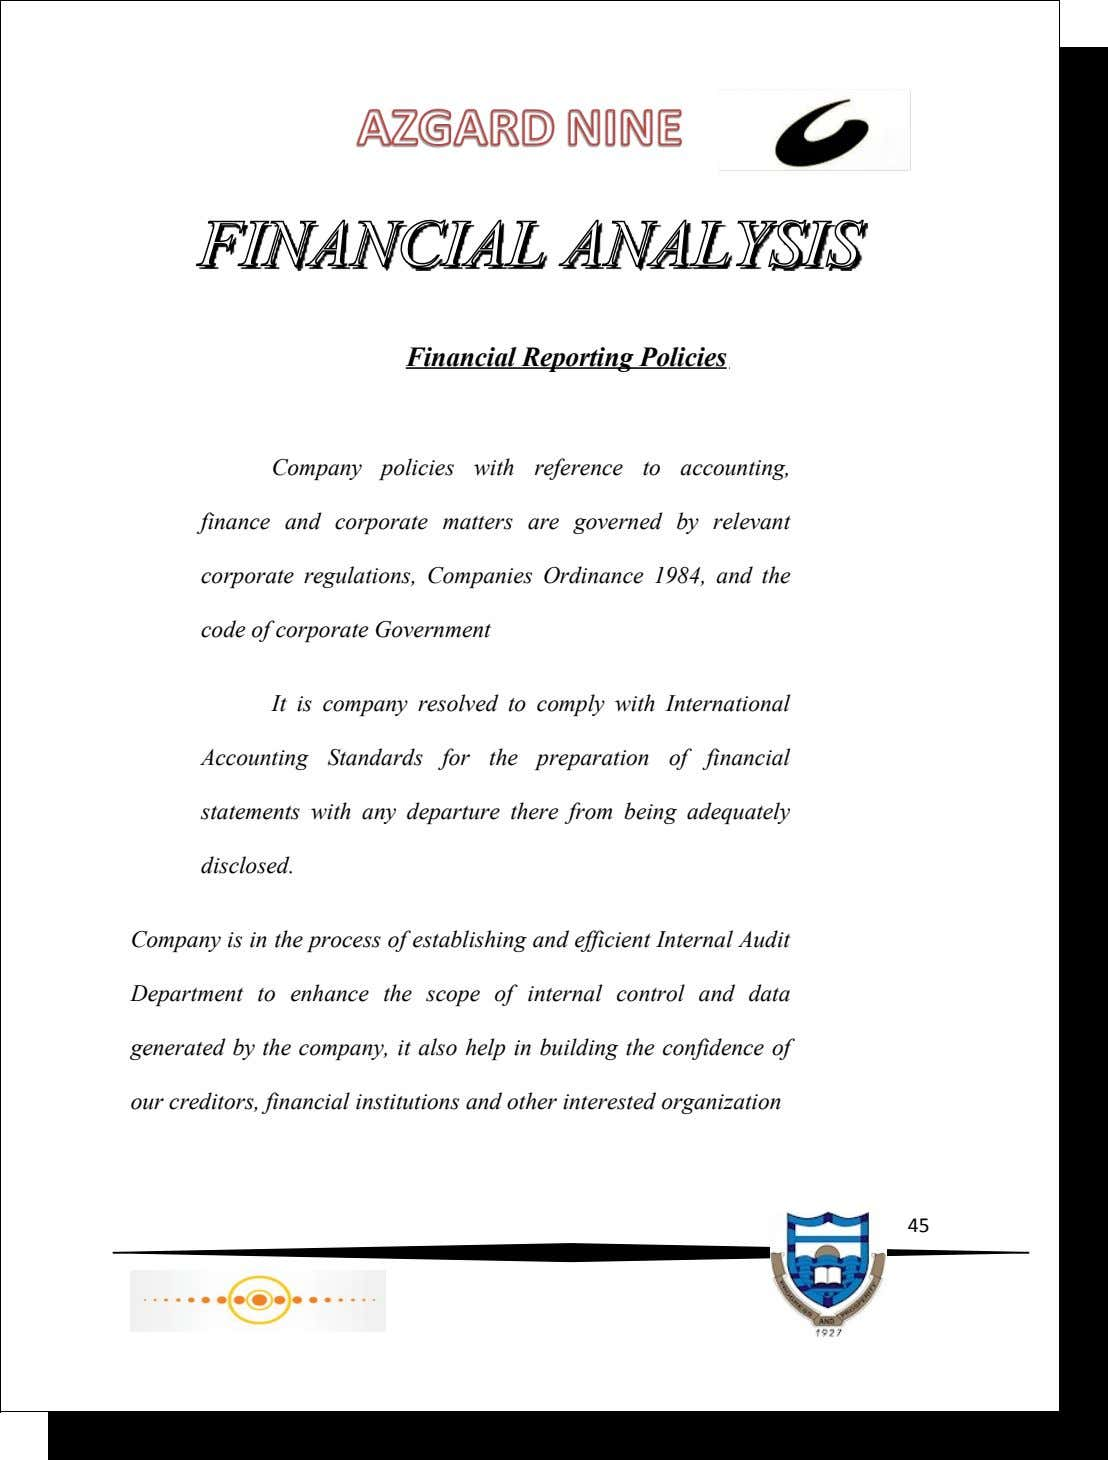 Financial Reporting Policies Company policies with reference to accounting, finance and corporate matters are